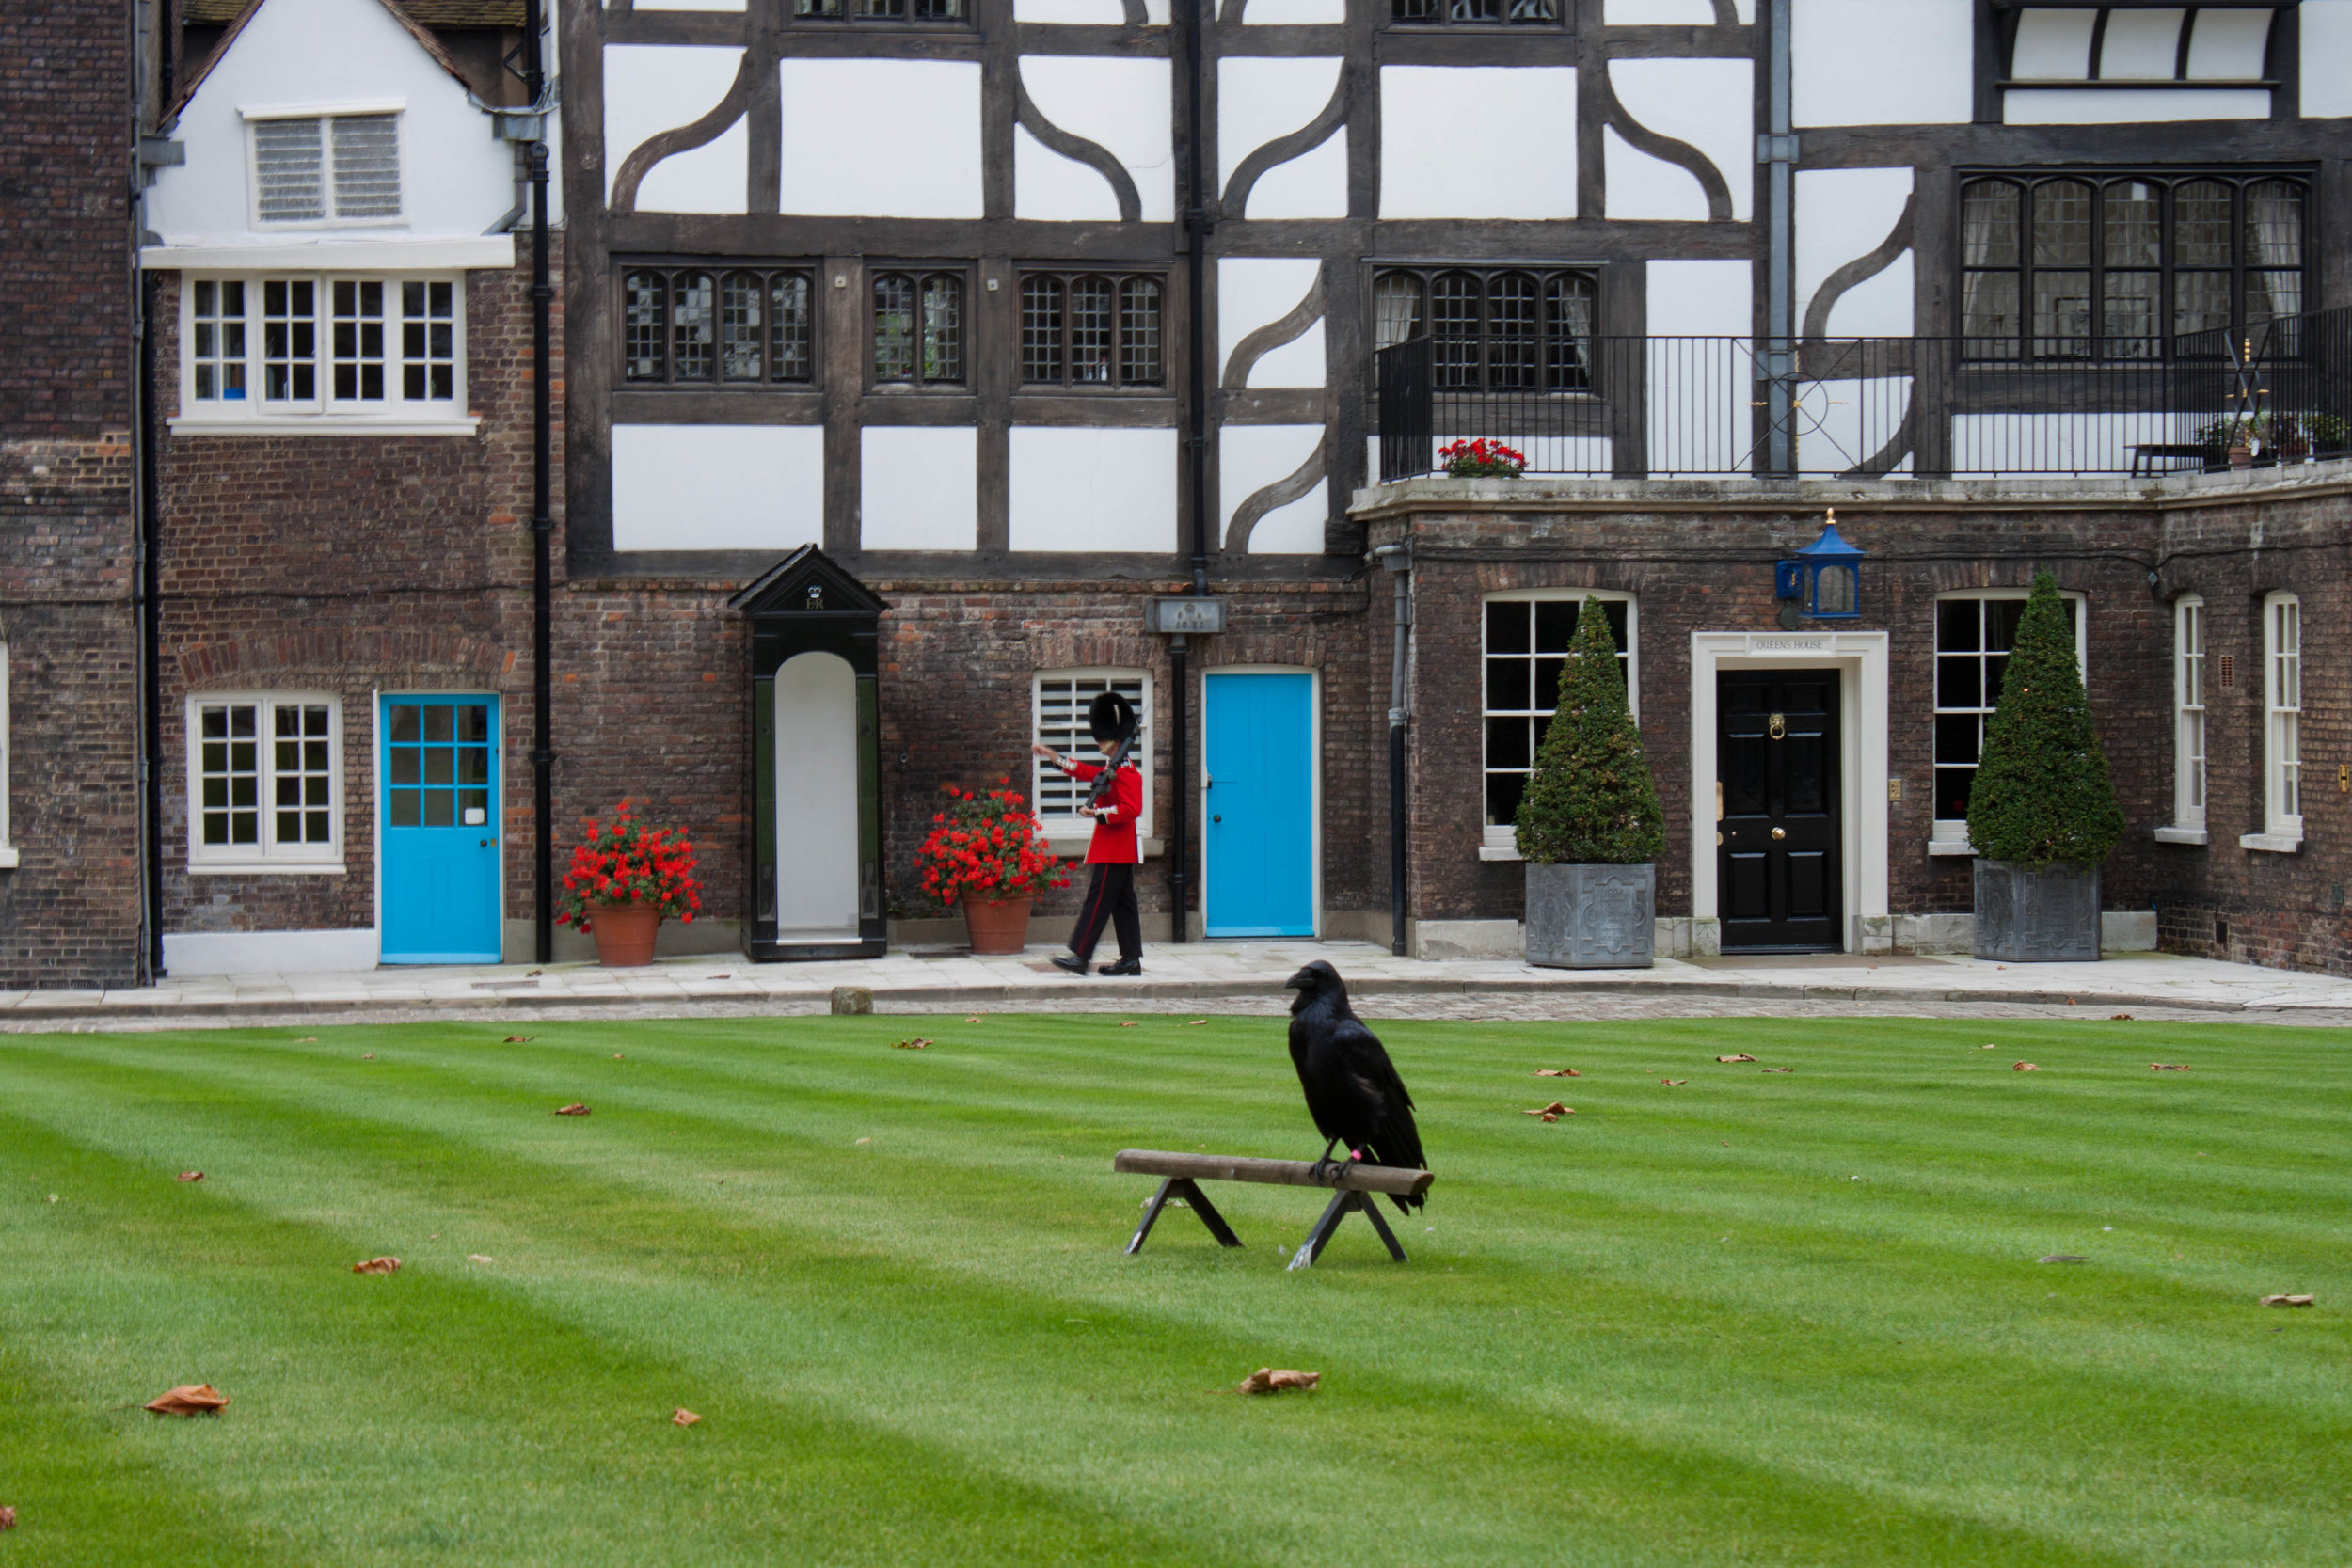 One of the ravens kept captive at the Tower of London sits on its perch while a member of the Queen's Guard marches in the background,September 2012.